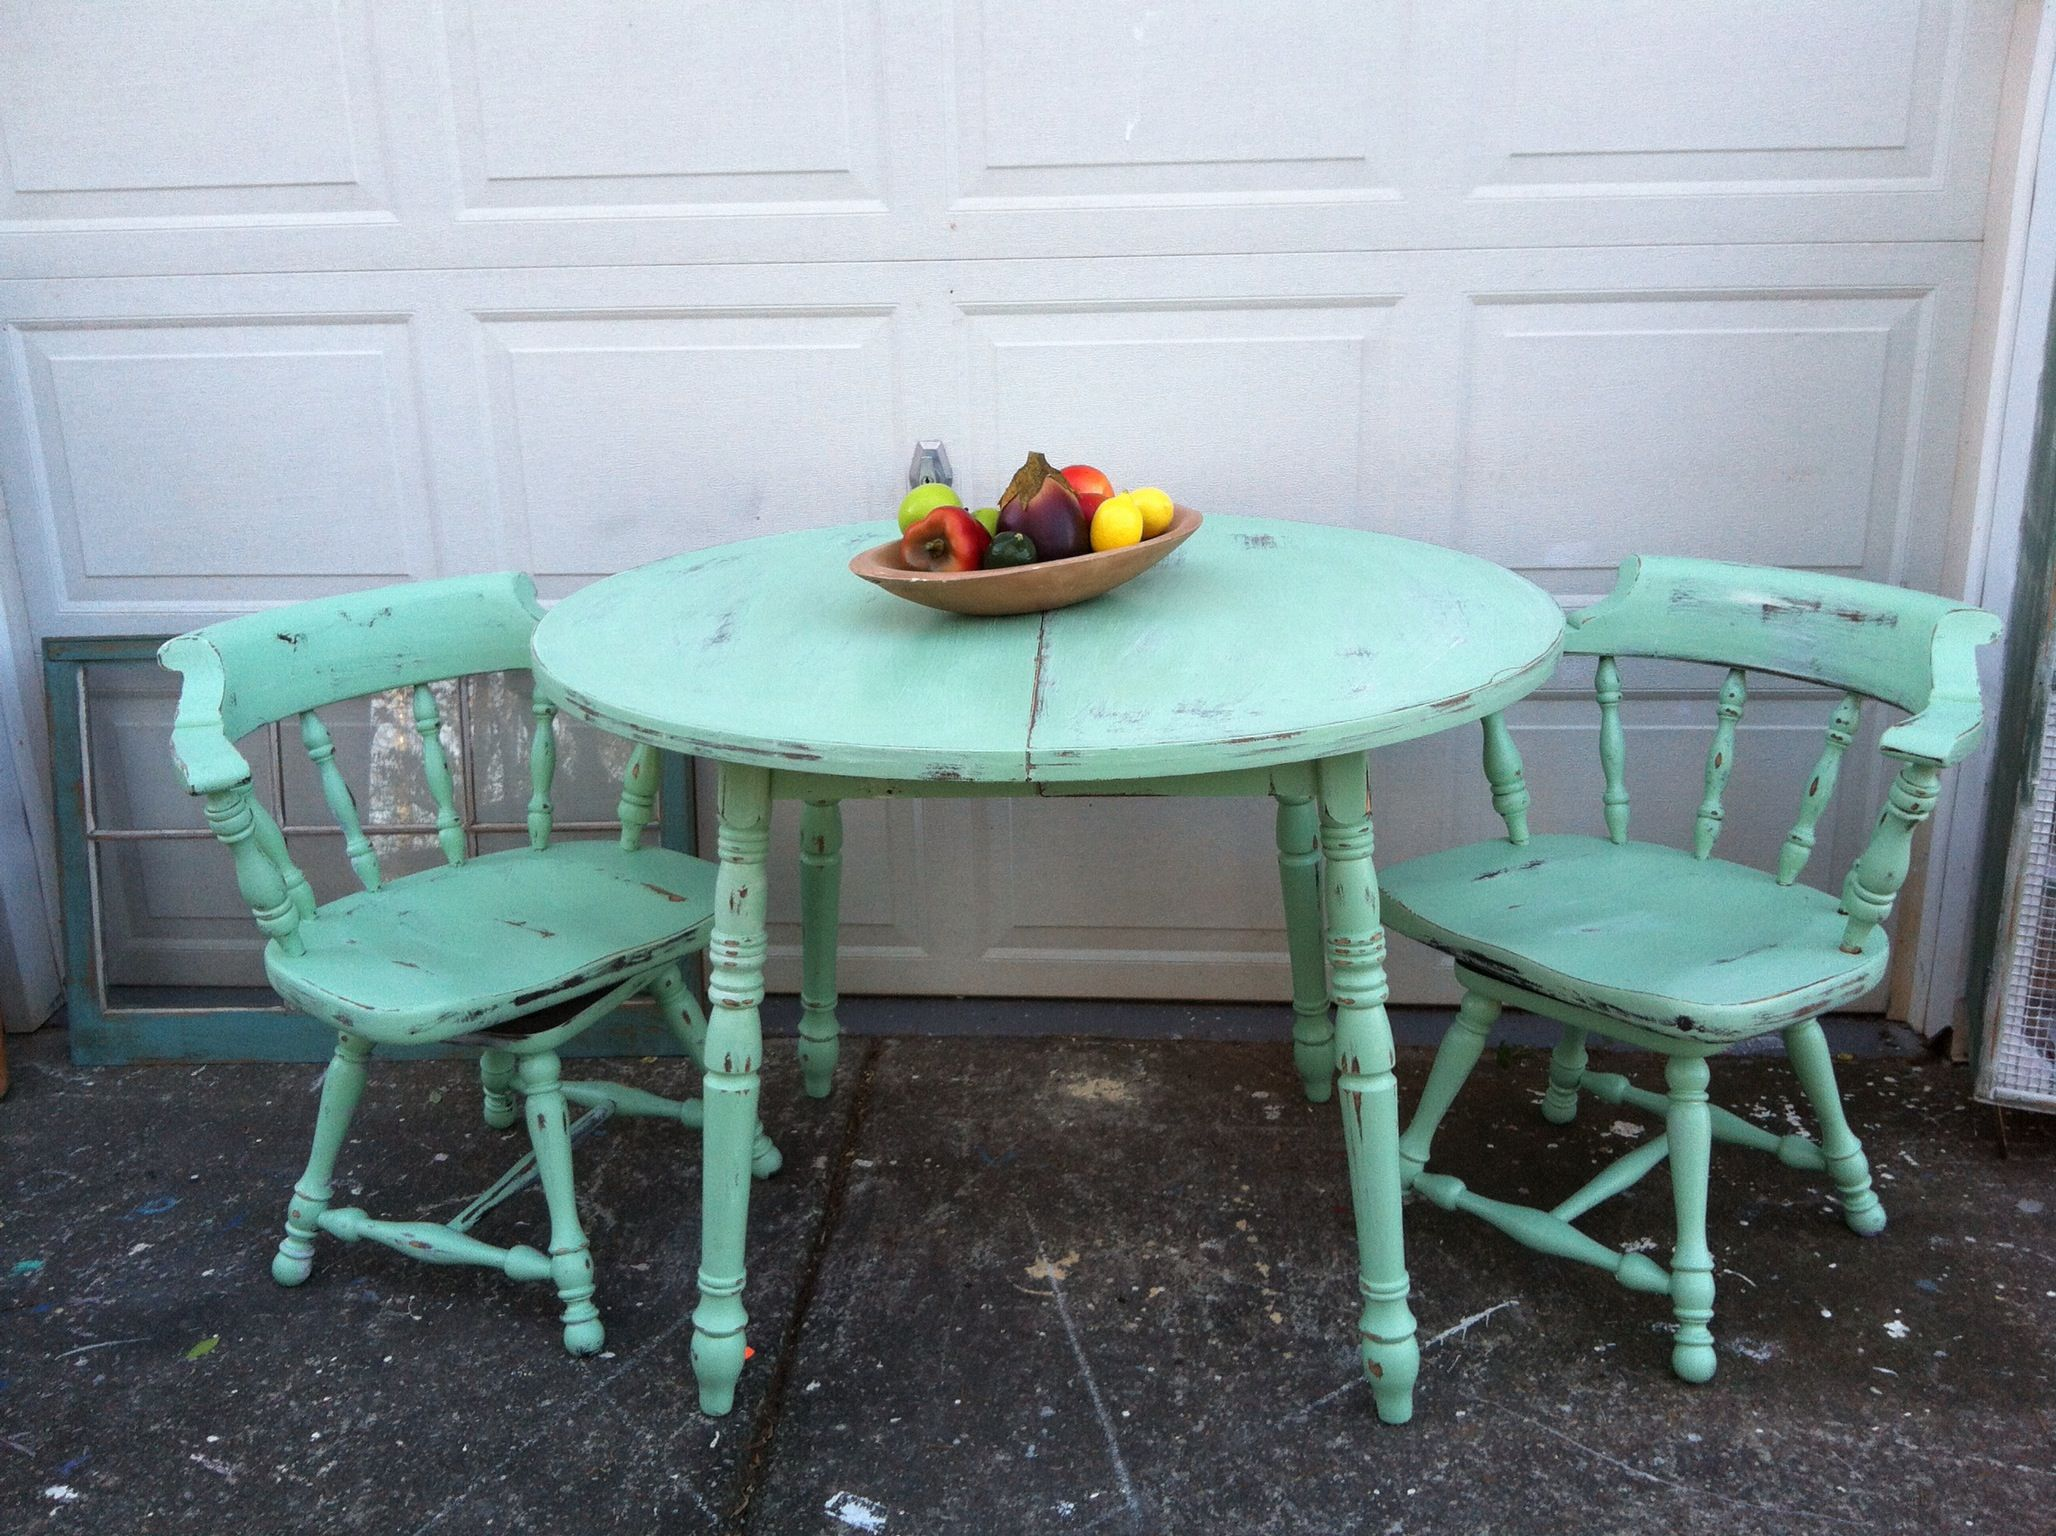 Shabby chic dining table and 2 chairs home sweet home pinterest - Shabby chic dining table sets ...